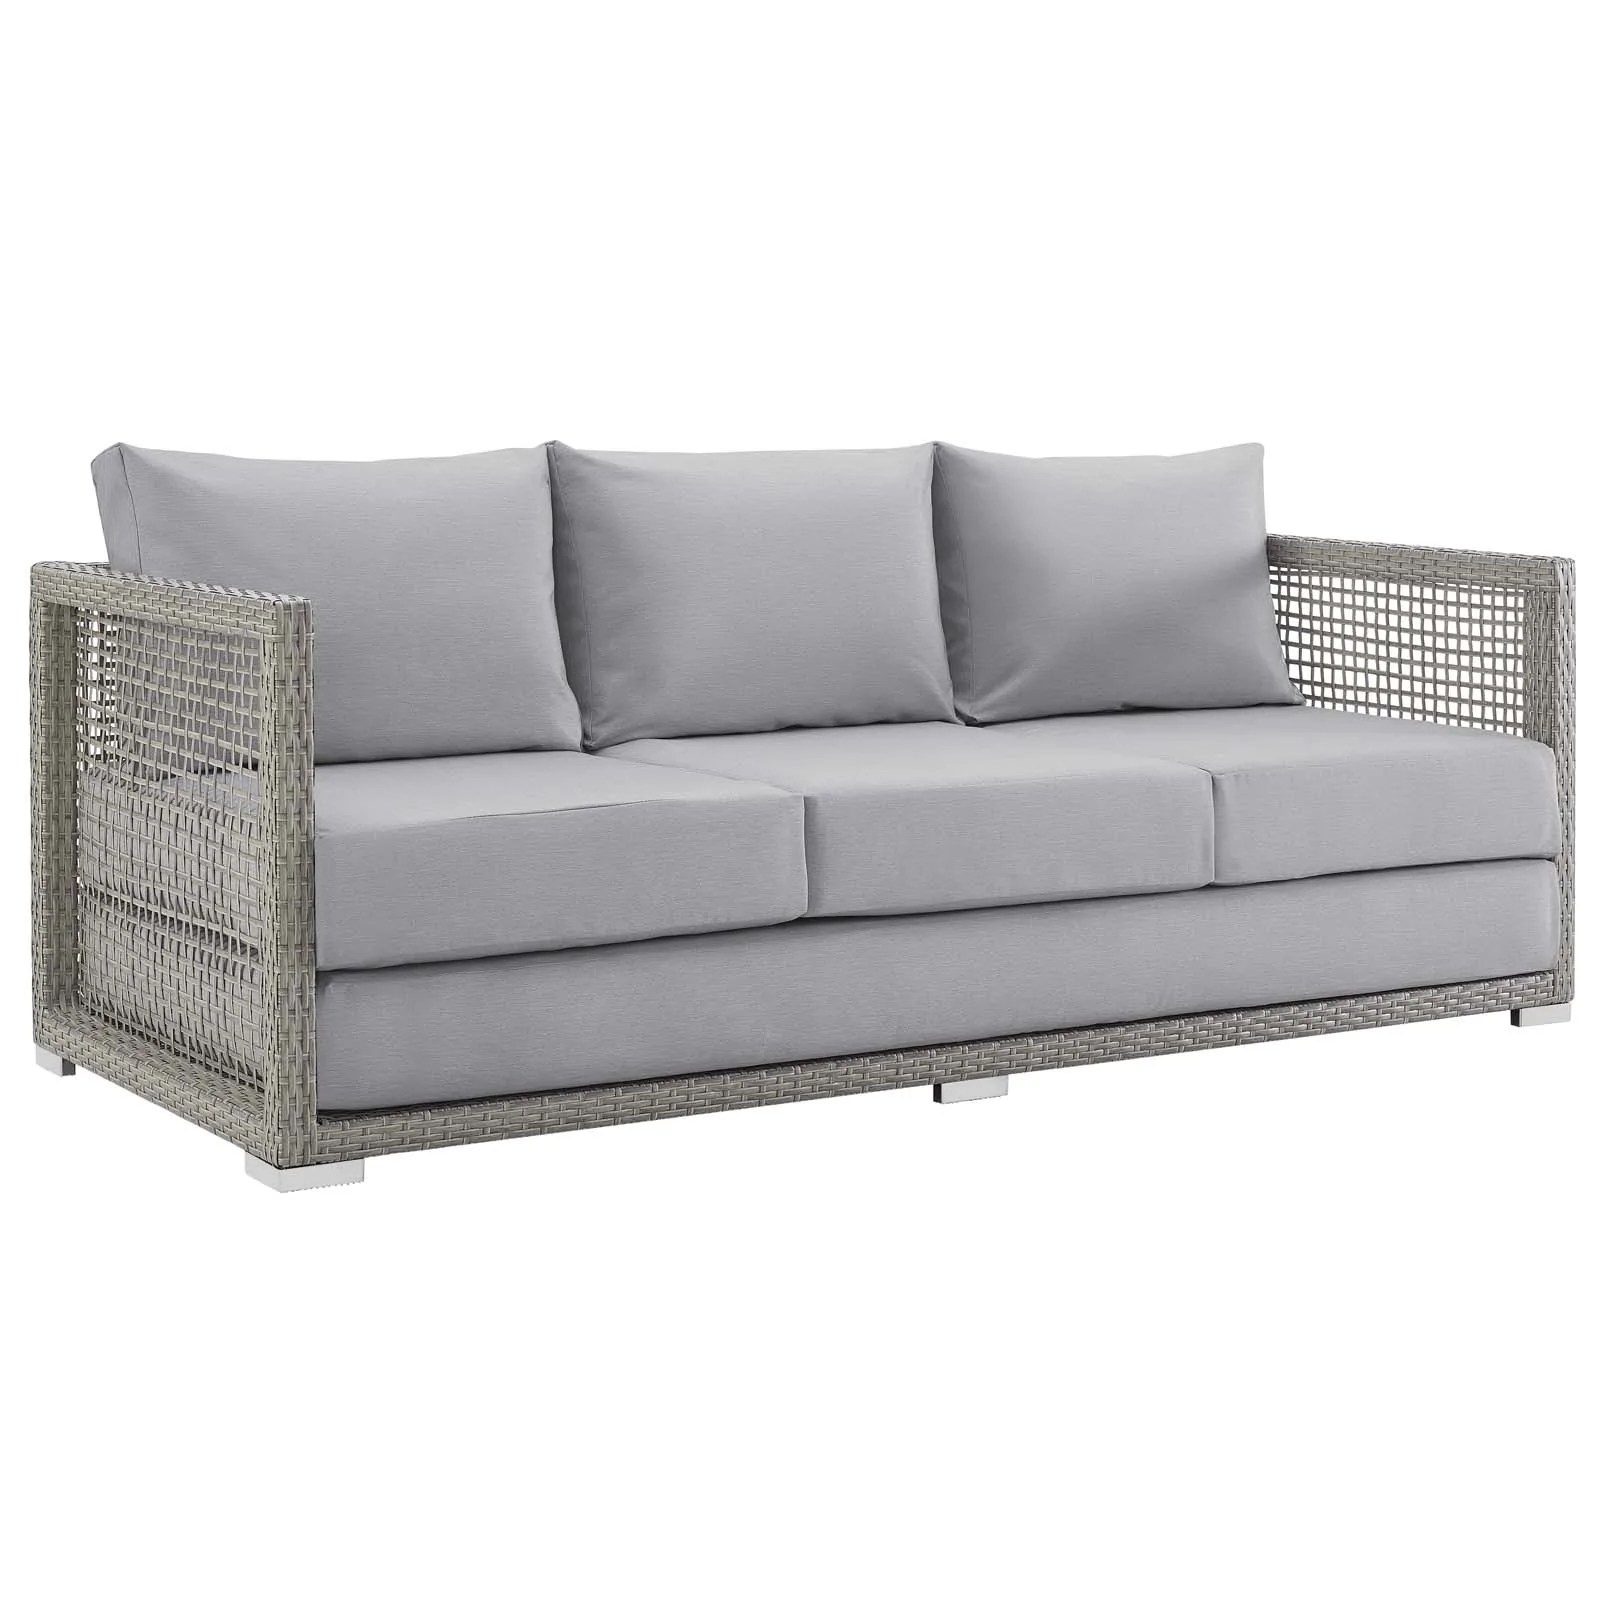 Rattan Twin Sofa Buy Modway Eei 2923 Gry Gry Aura Outdoor Patio Wicker Rattan Sofa At Contemporary Furniture Warehouse